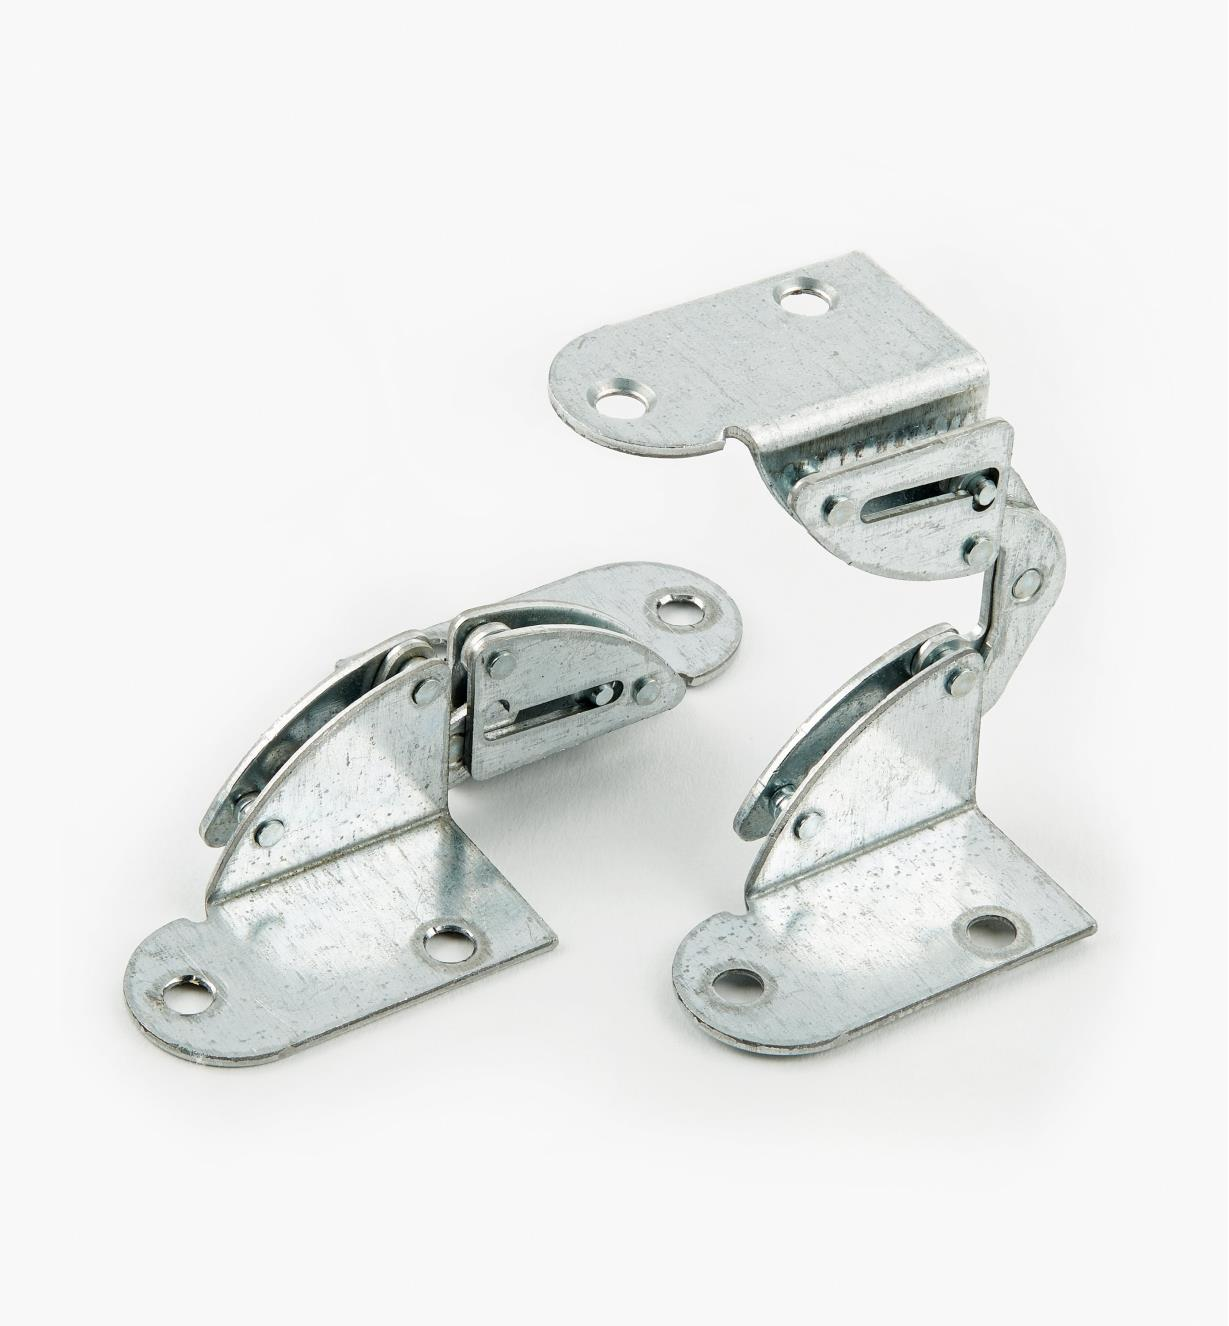 17K1551 - Folding Leaf Hinges, 22mm